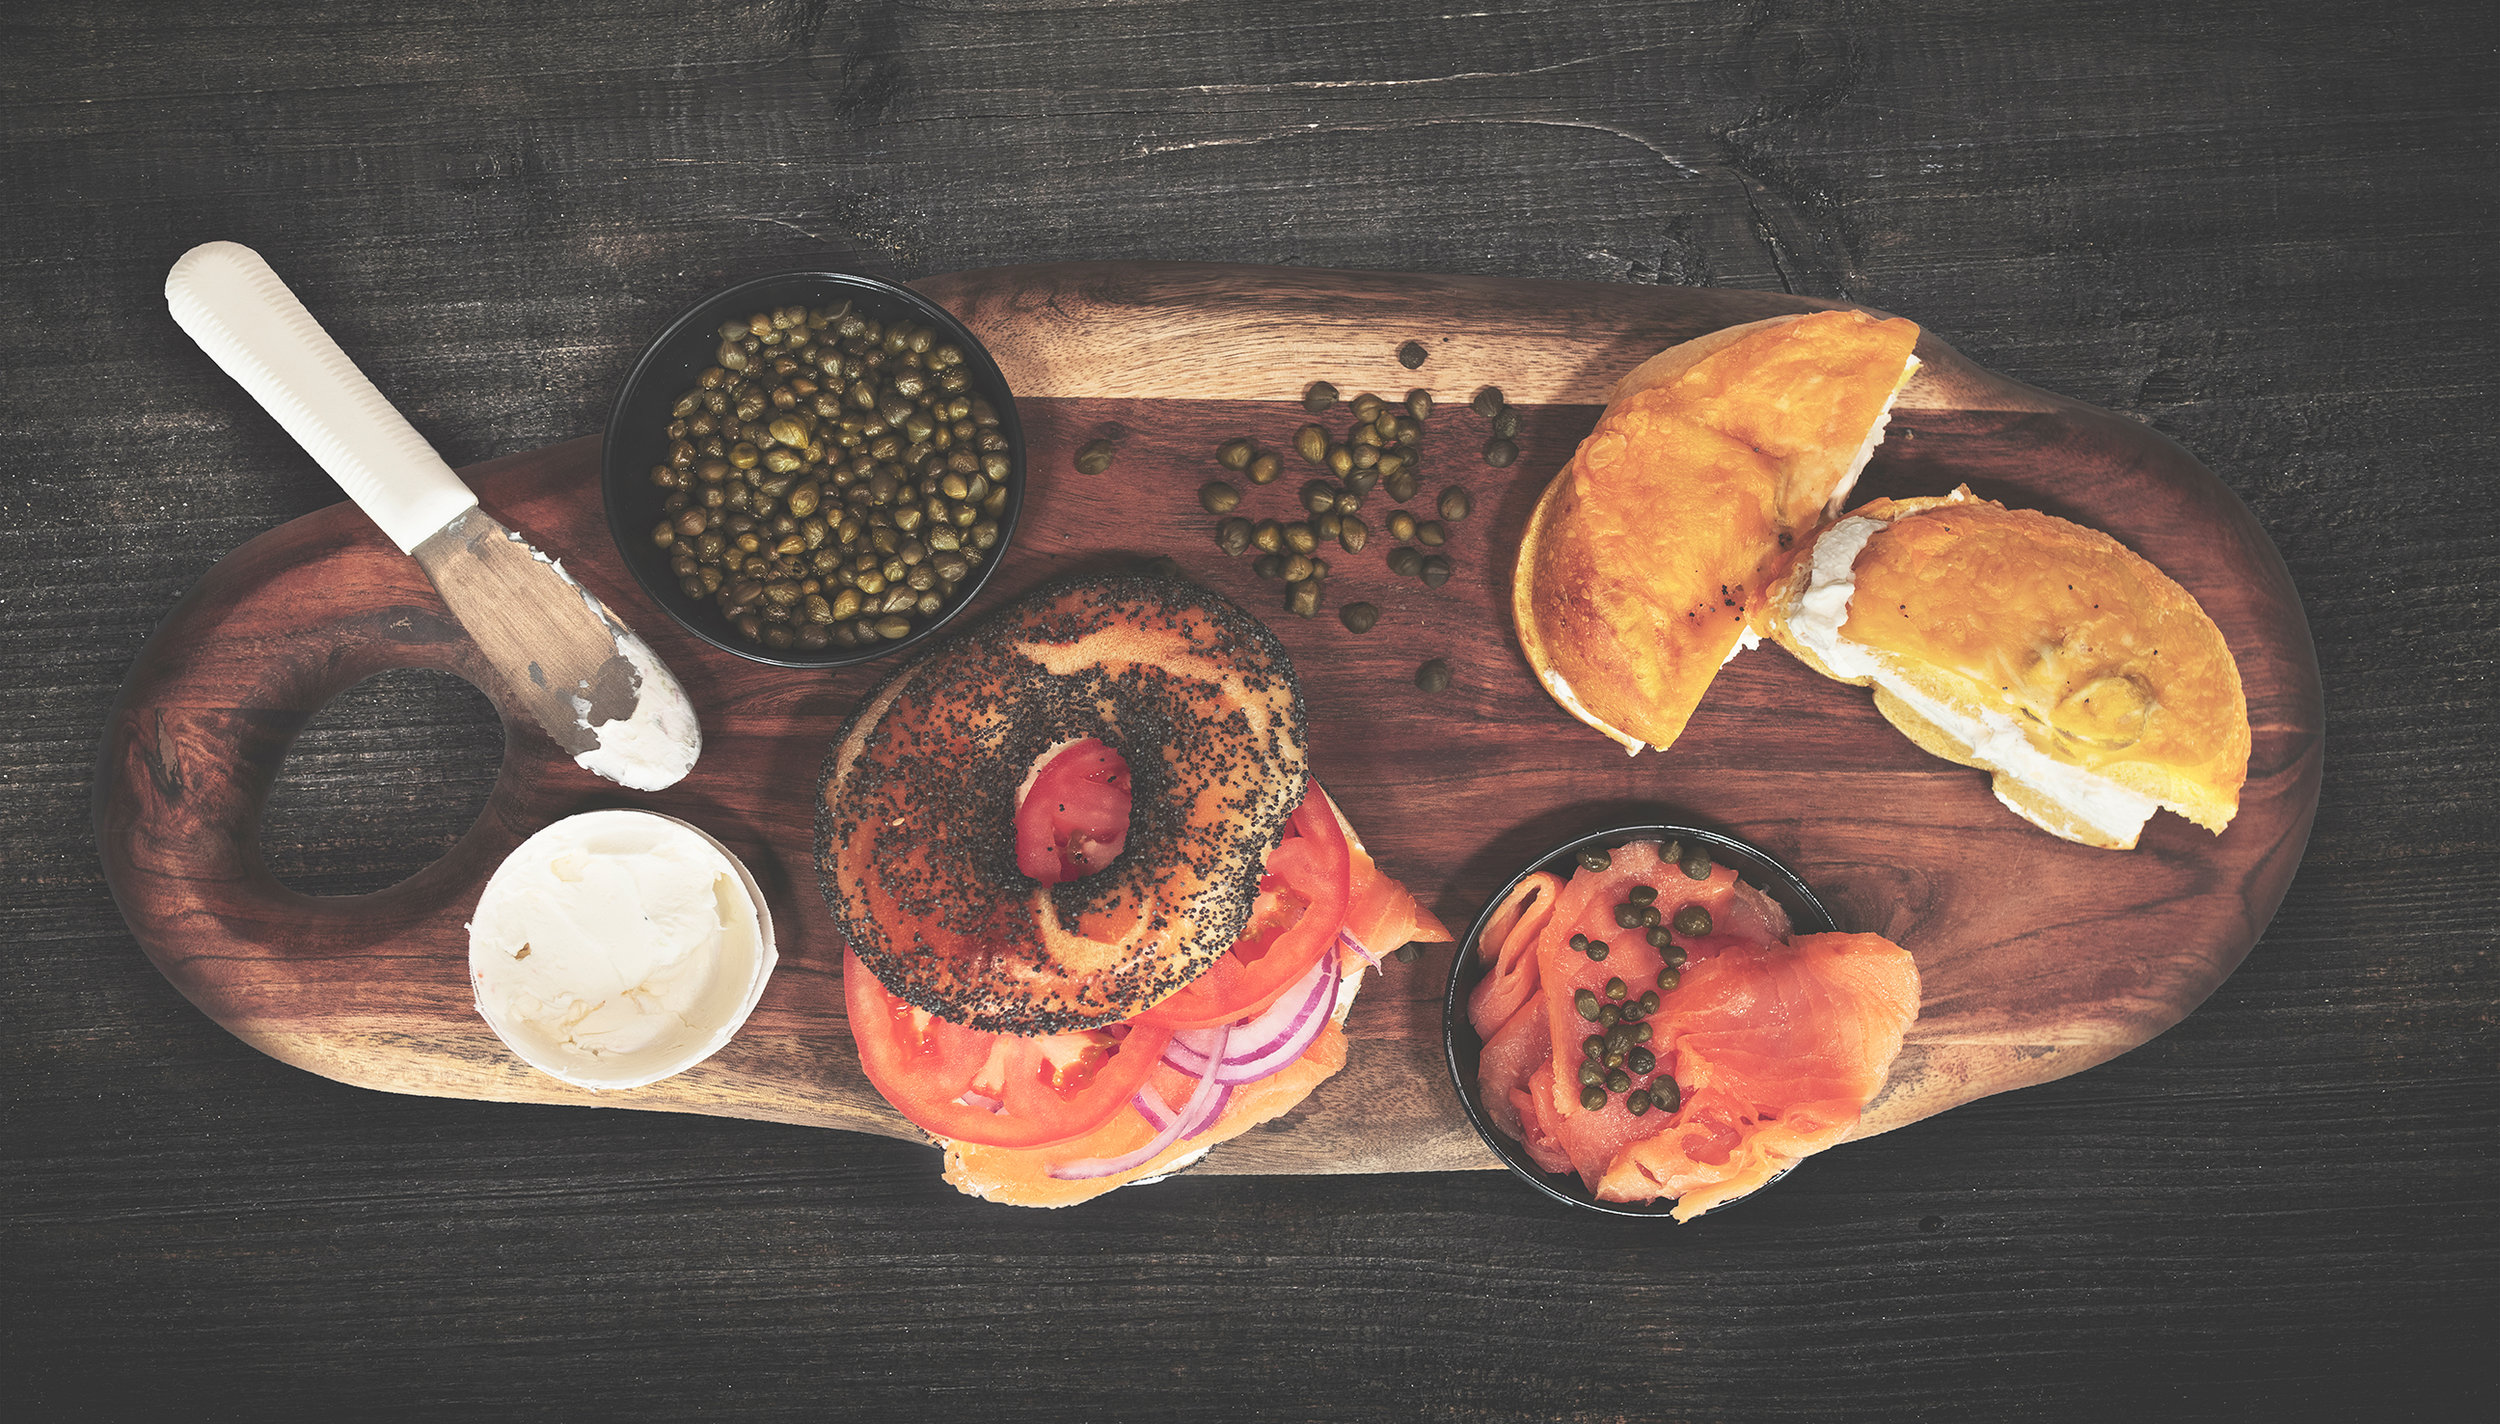 BAGEL & BAKED GOODS - New York Water Bagels brought to Atlanta